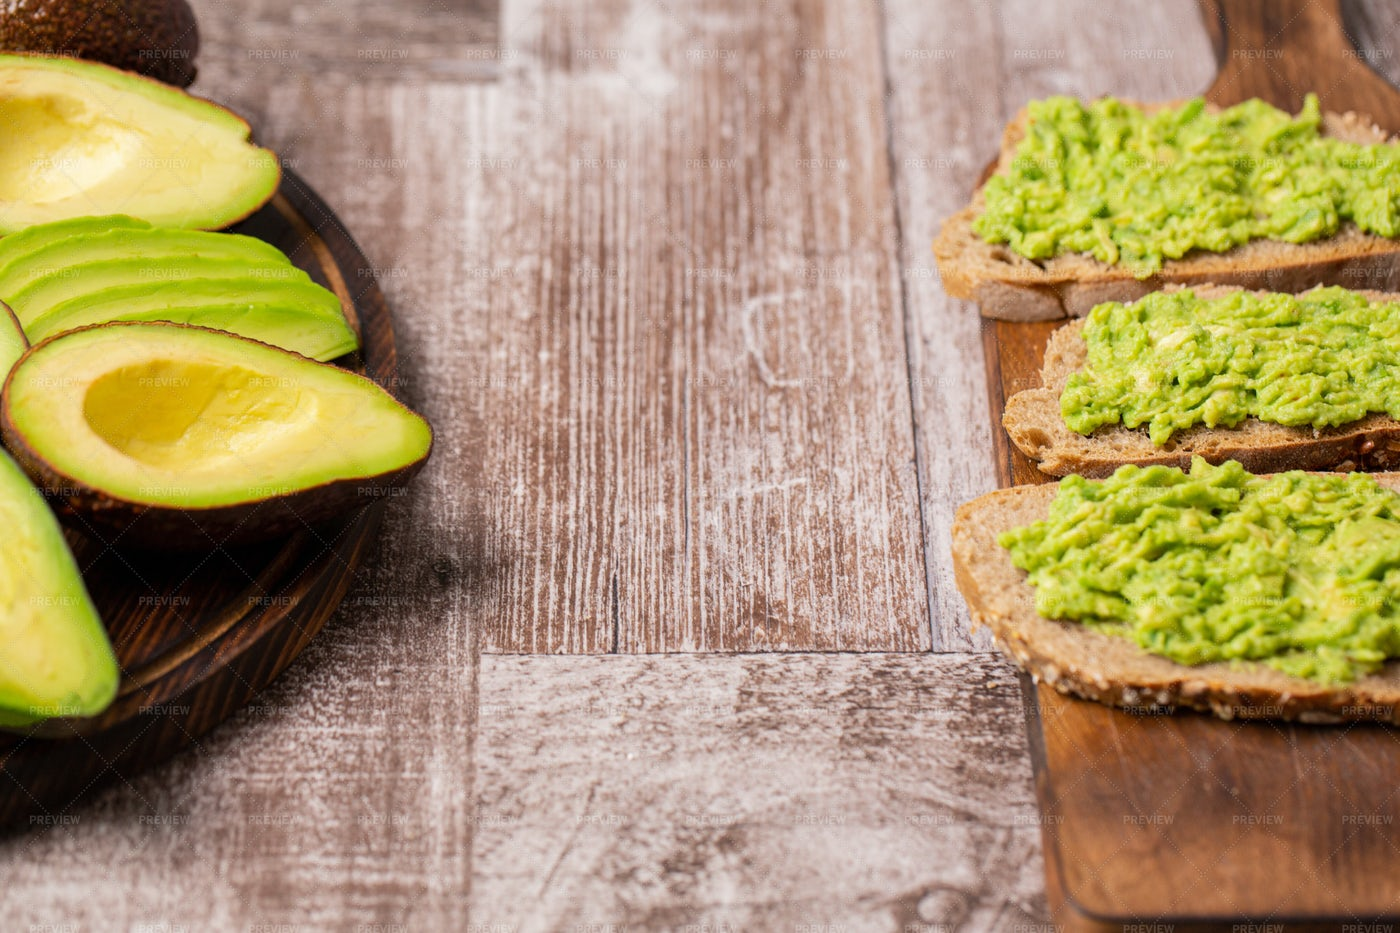 Avocado Toast Next To Cutted Ones: Stock Photos